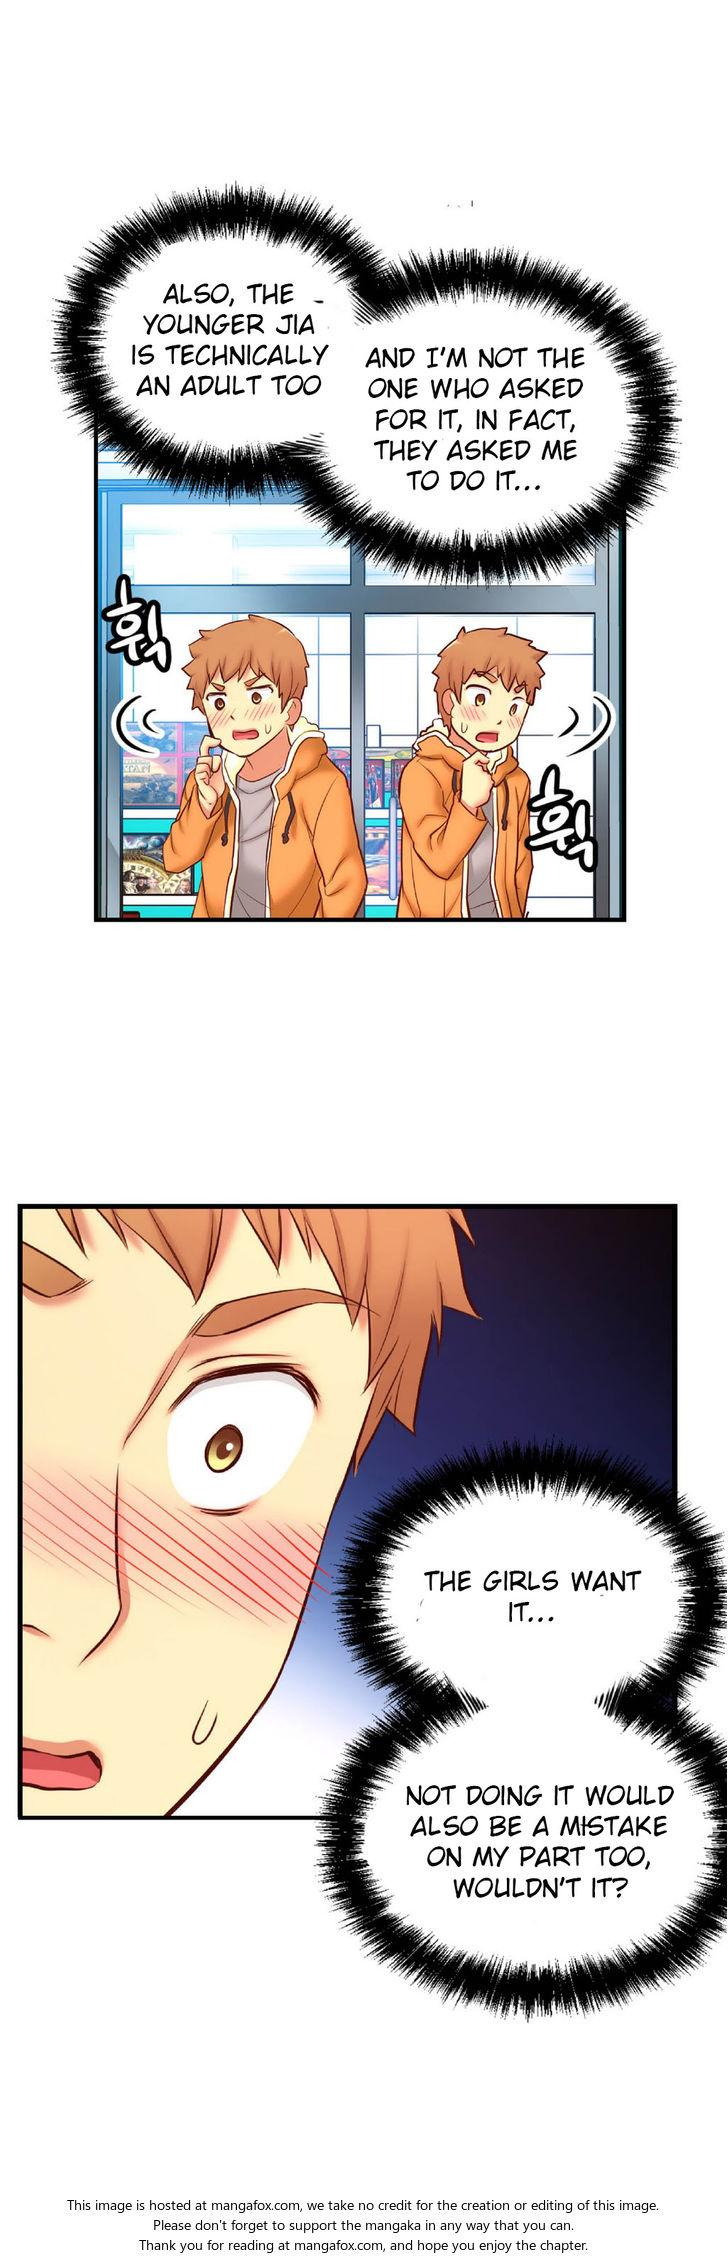 [Donggul Gom] She is Young (English) Part 1/2 1631